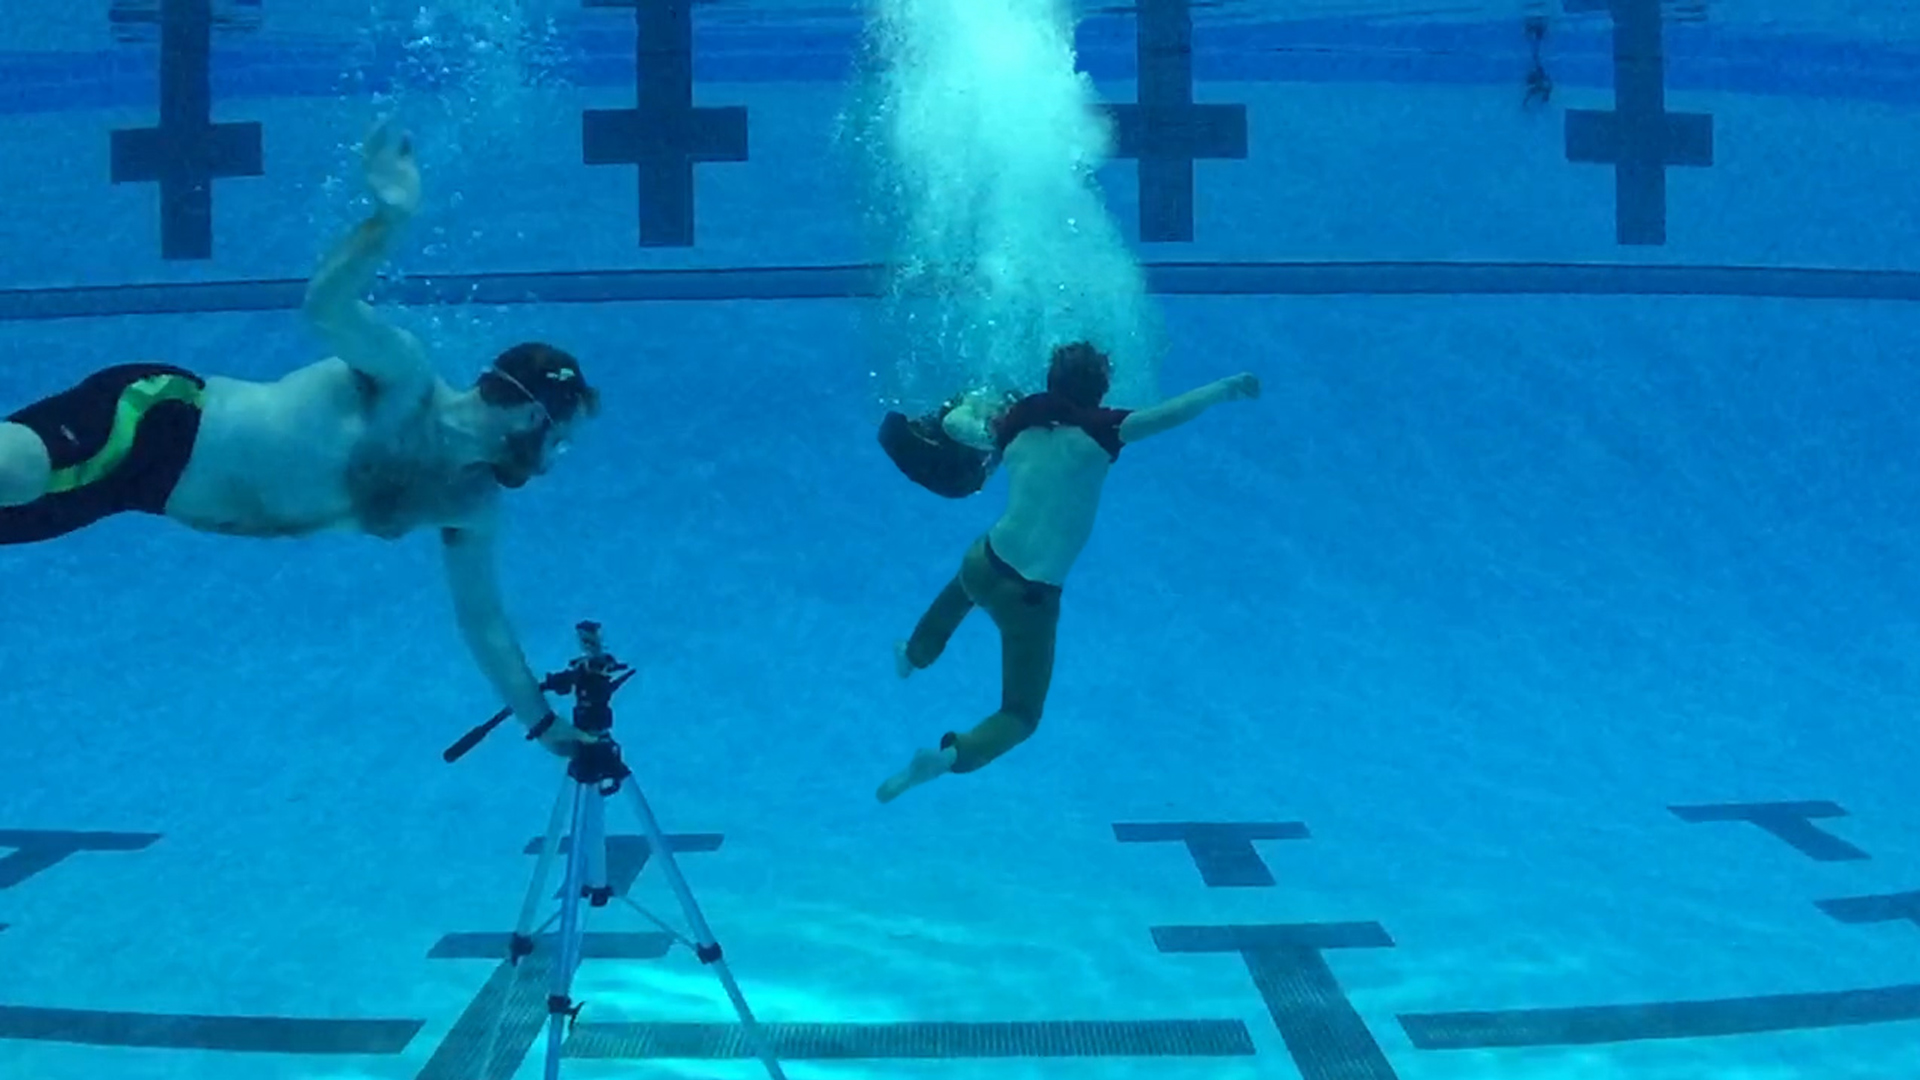 A still from our shoot at Eppley Pool